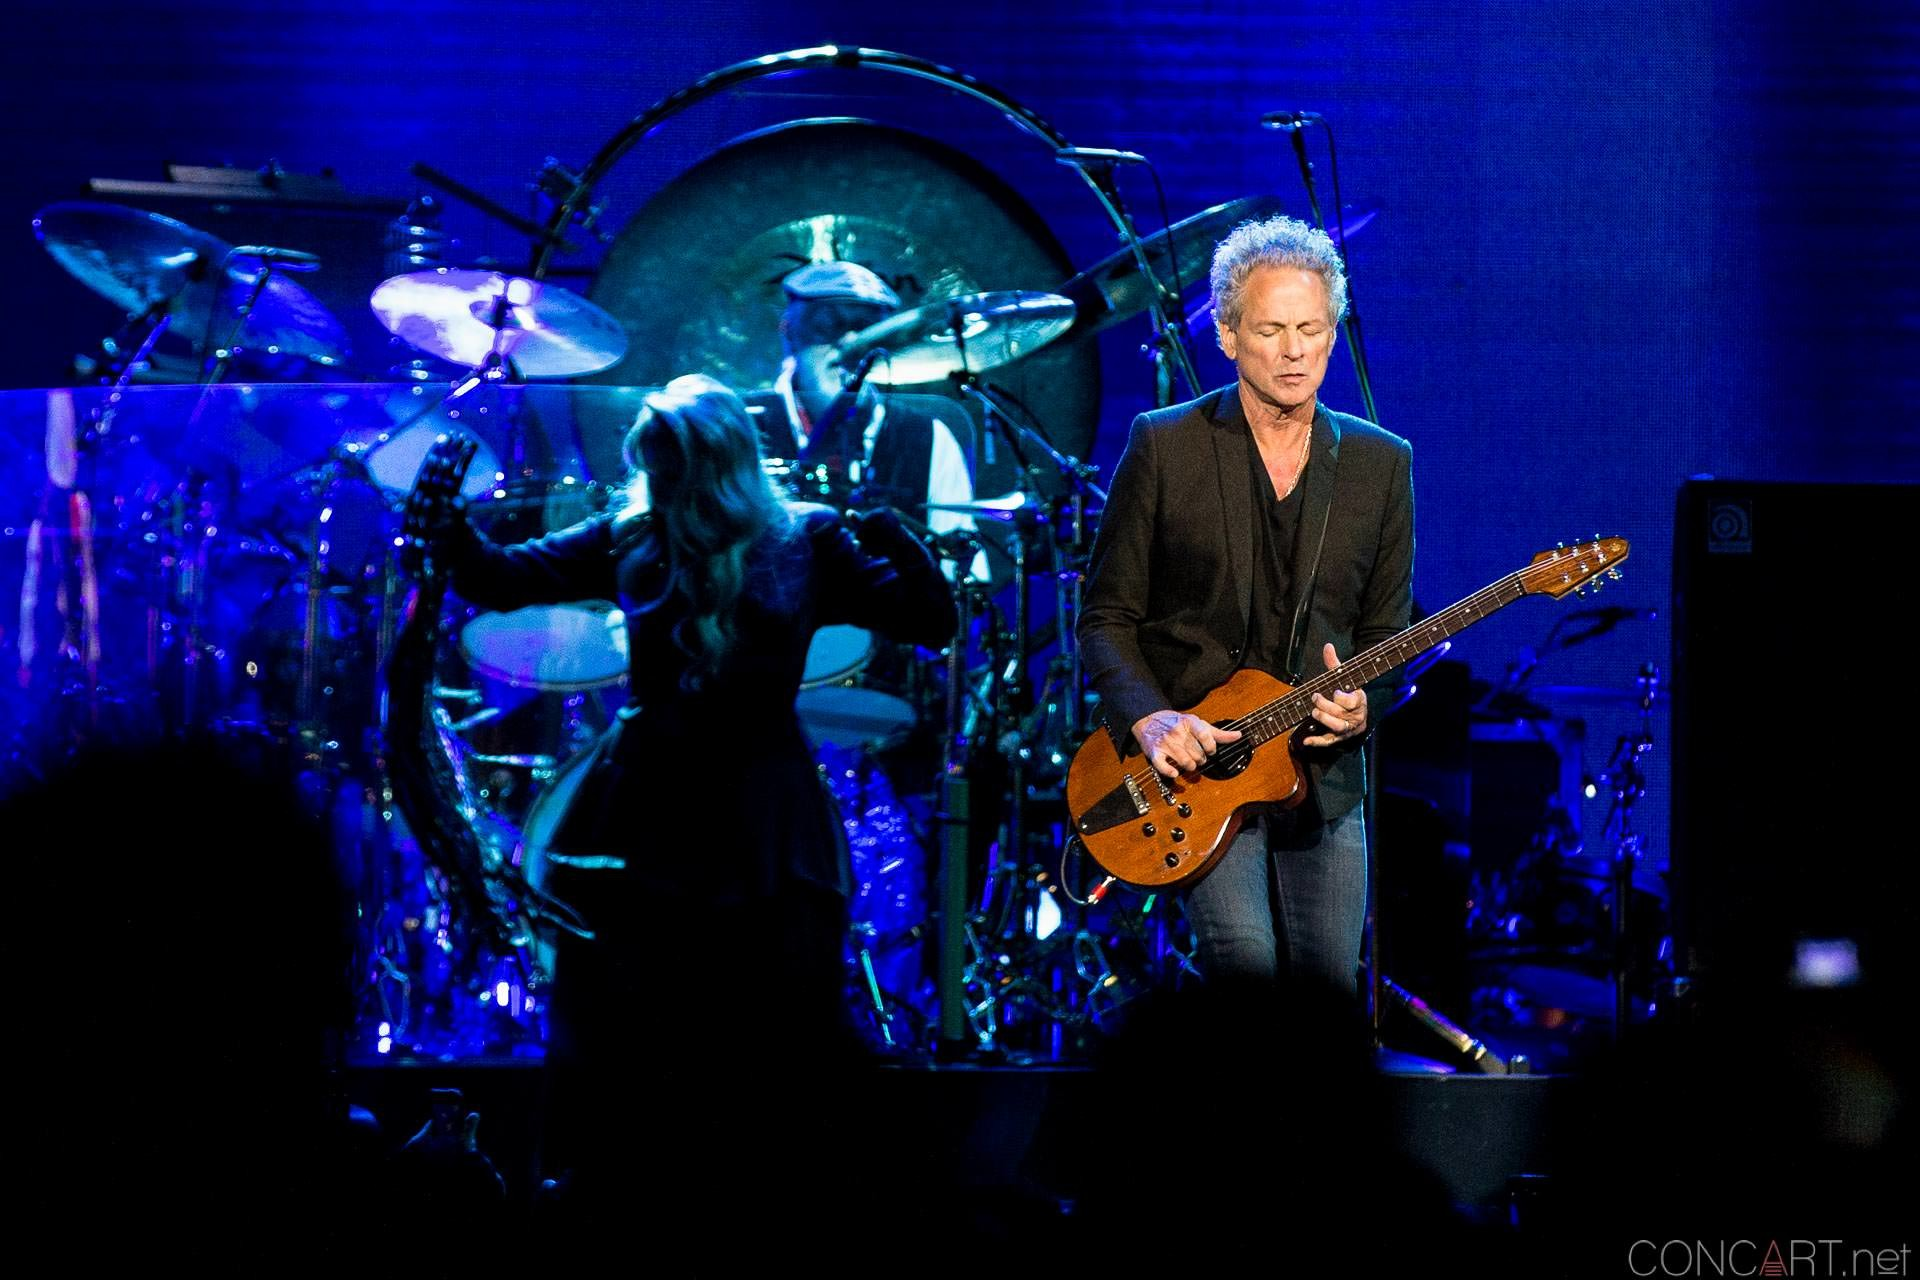 002-fleetwood-mac-live-indianapolis-bankers-life-fieldhouse-2014